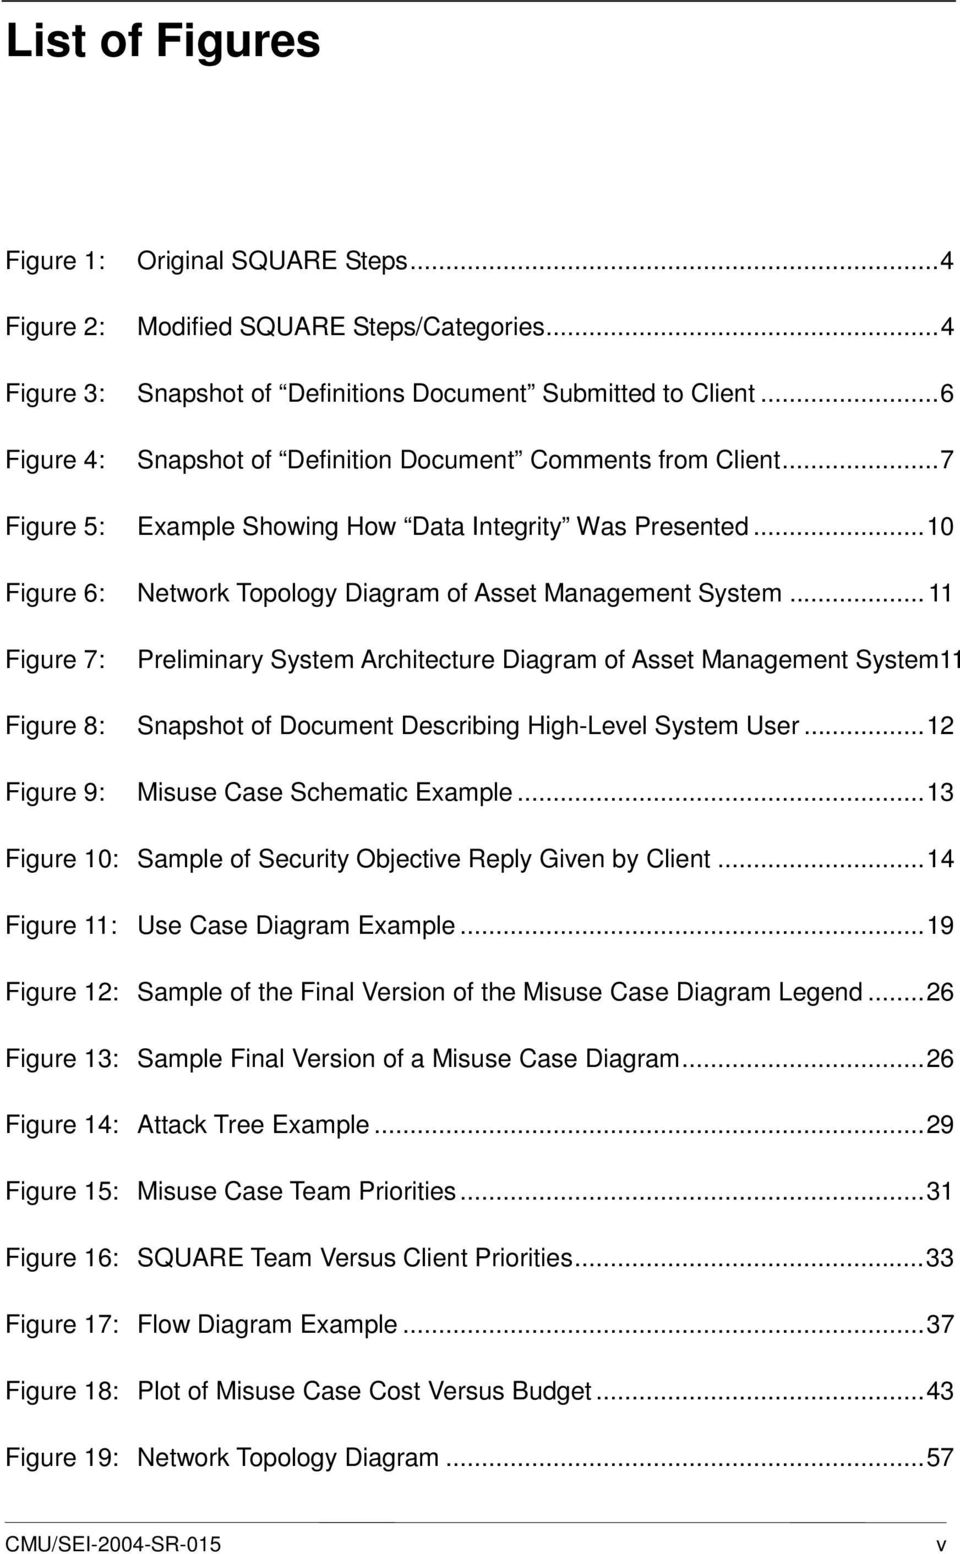 .. 11 Figure 7: Preliminary System Architecture Diagram of Asset Management System11 Figure 8: Snapshot of Document Describing High-Level System User...12 Figure 9: Misuse Case Schematic Example.